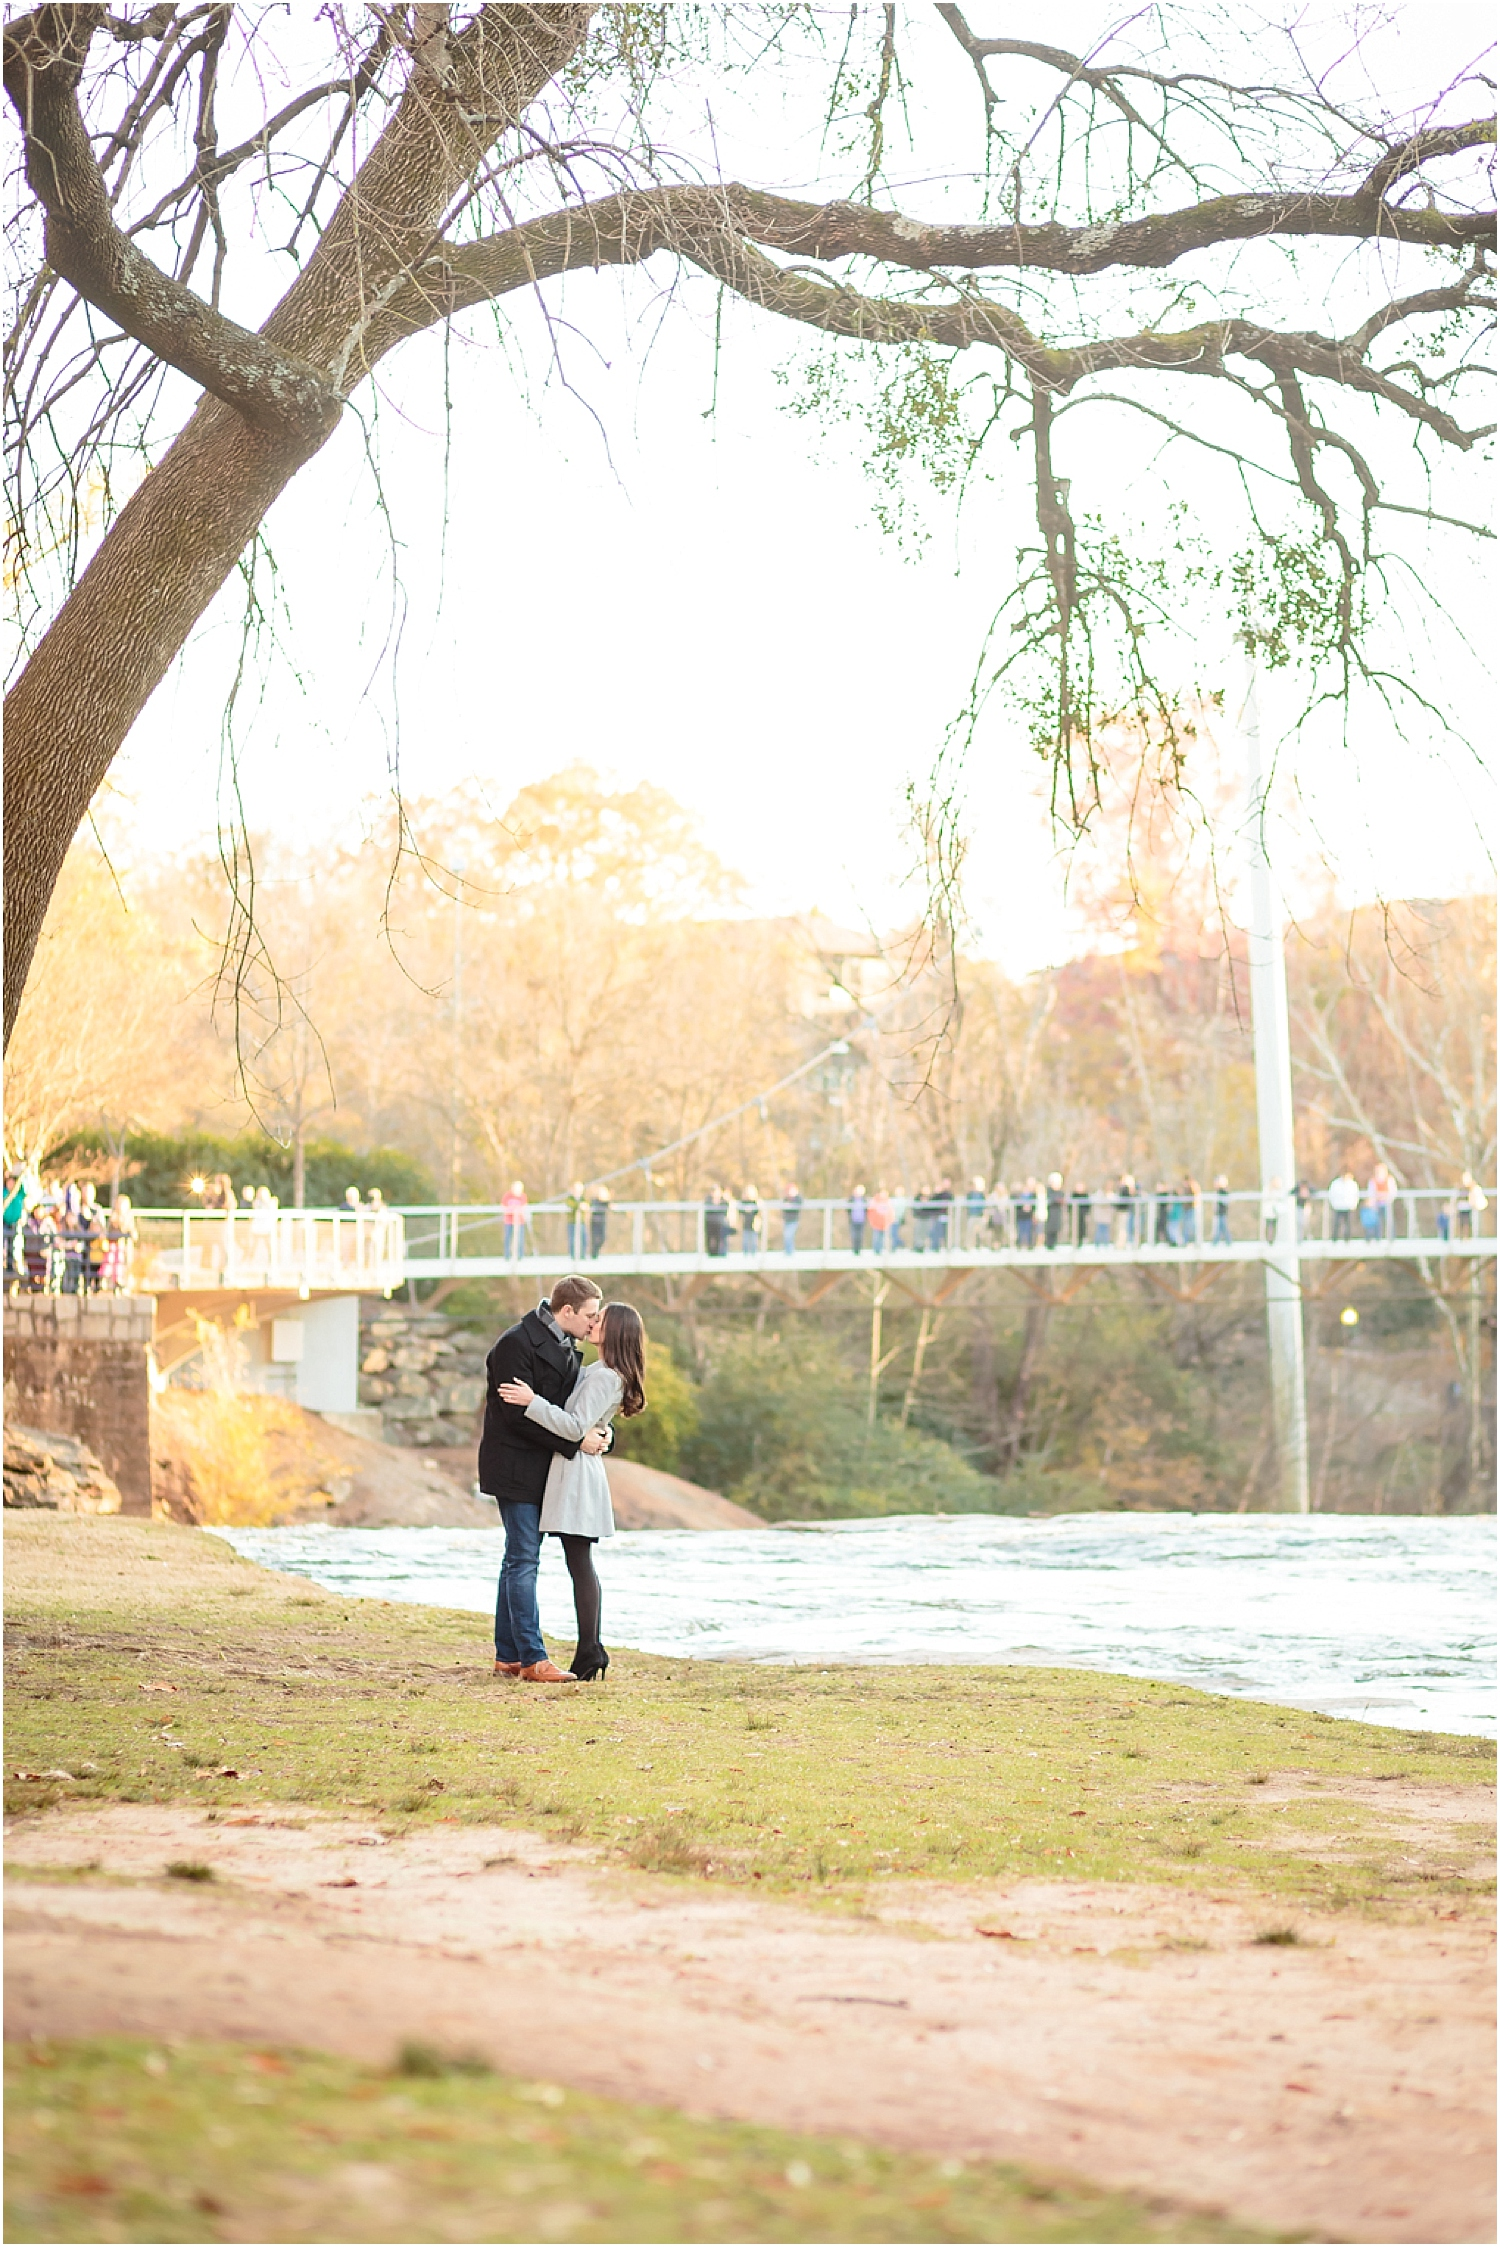 141128--8866Downtown-Greenville-engagement_blog.jpg